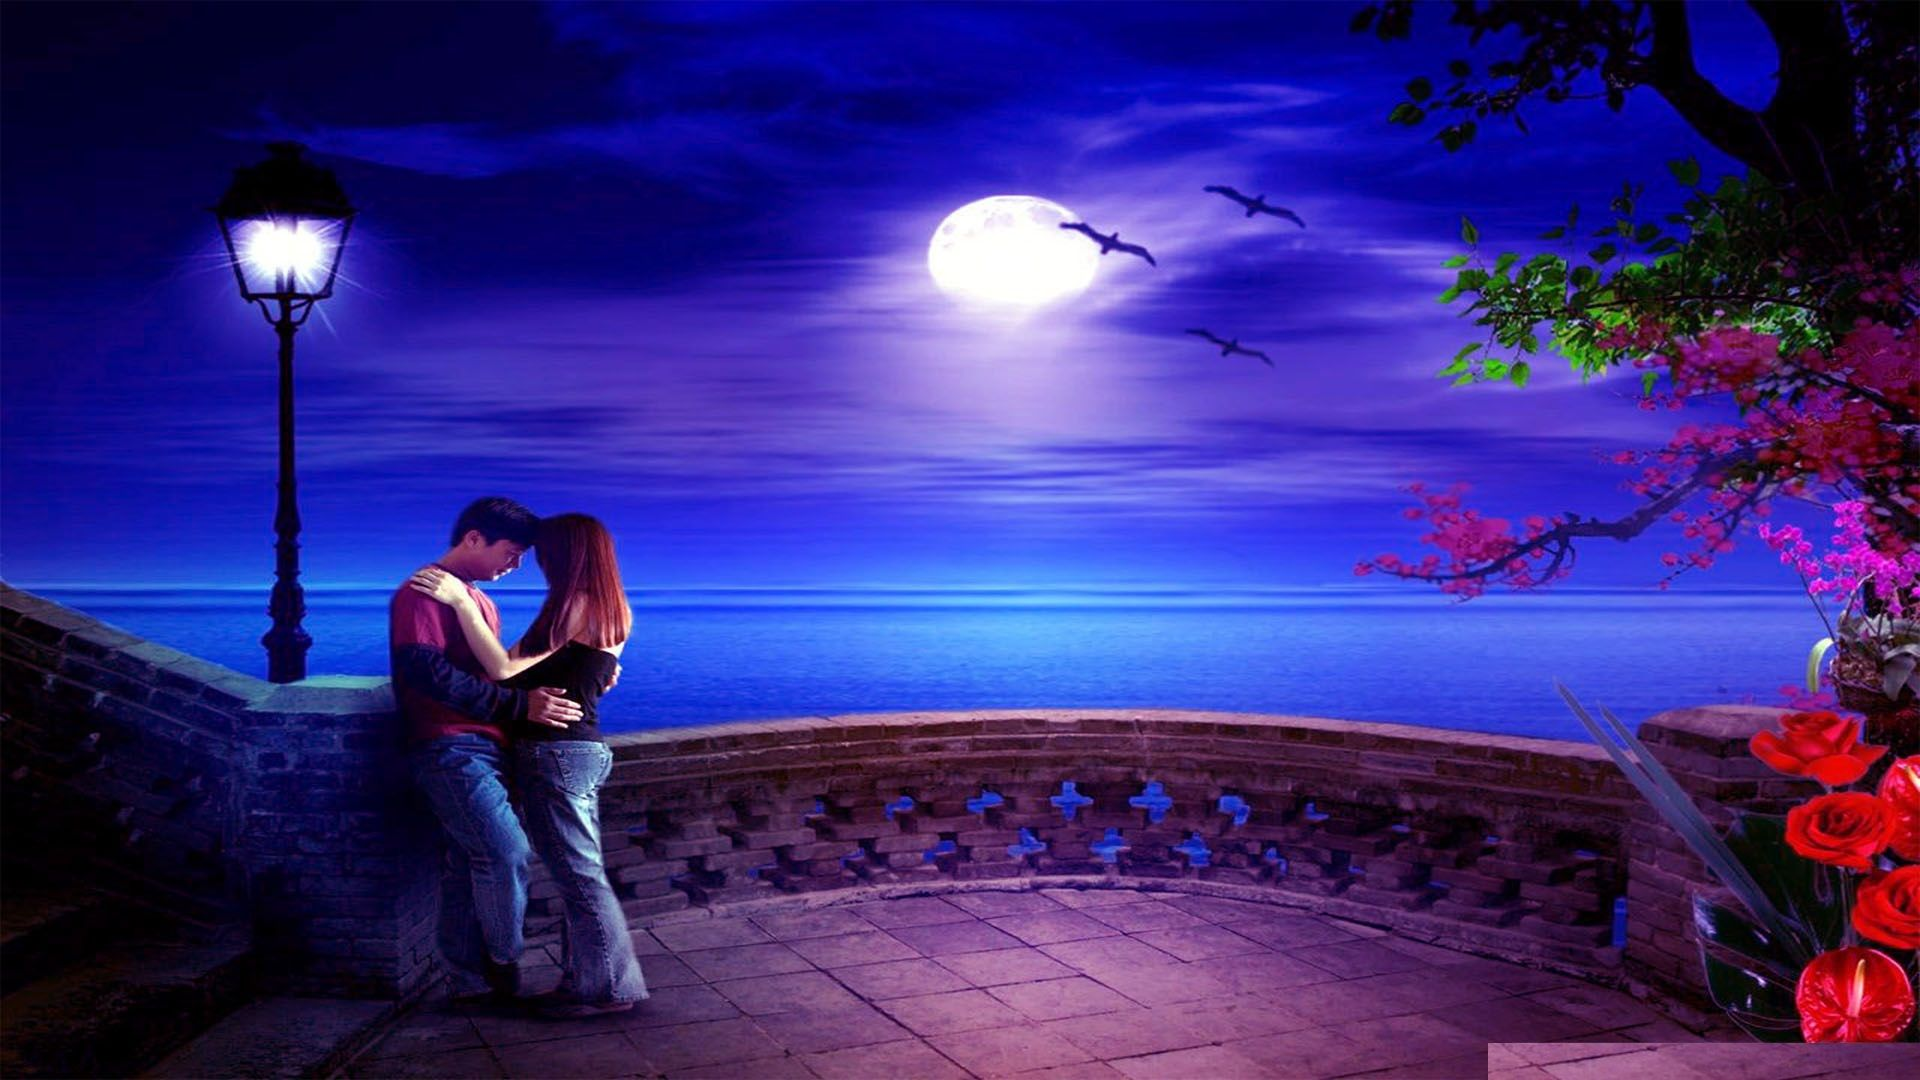 Love Wallpaper Hd For Laptop : Romantic Love HD Wallpapers : Find best latest Romantic ...